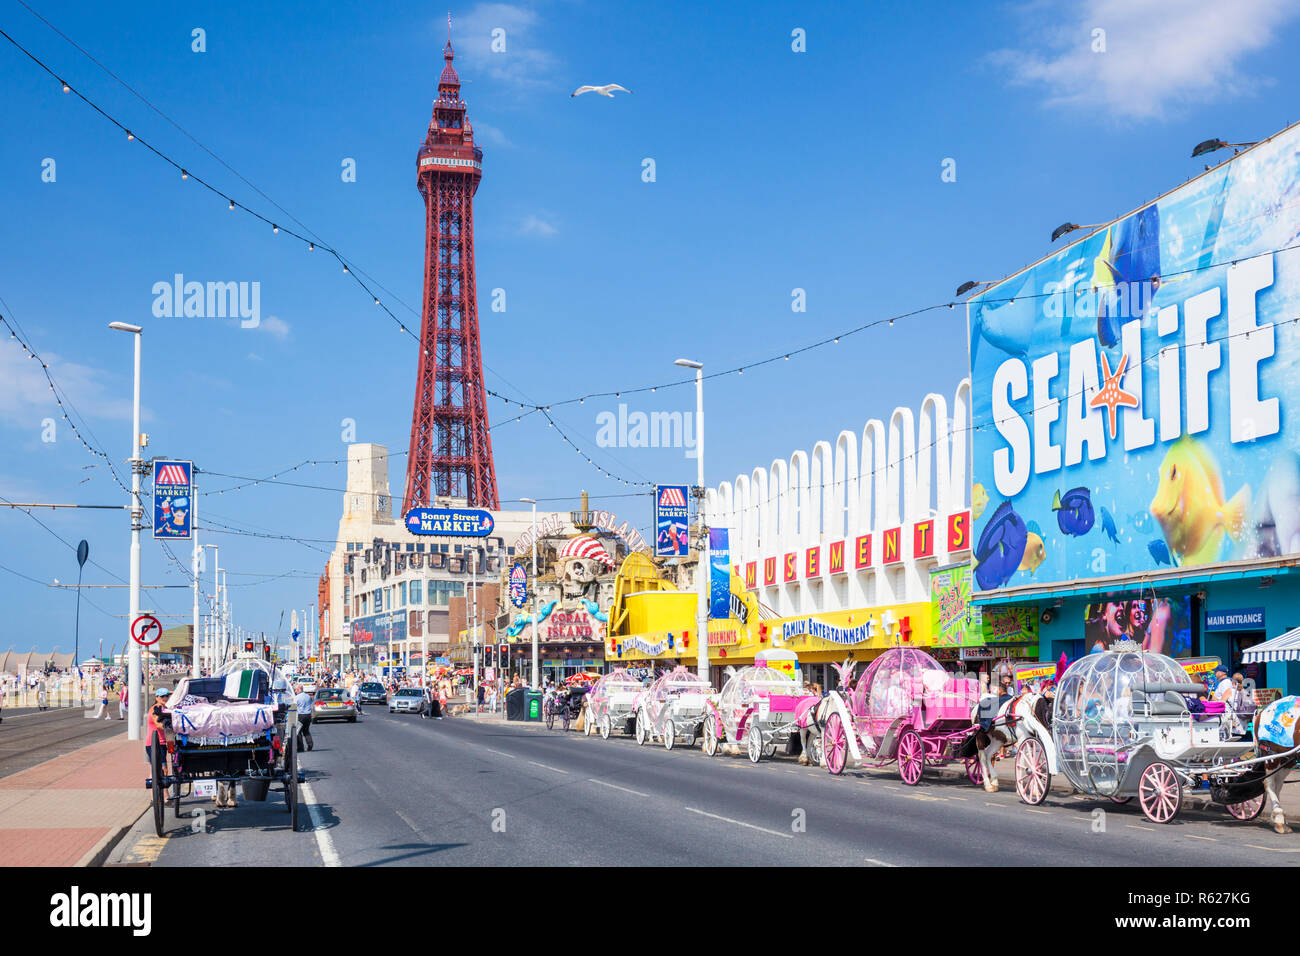 Blackpool tower and seafront promenade with Sealife centre aquarium amusements and horse drawn carriages Blackpool Lancashire England GB UK Europe - Stock Image